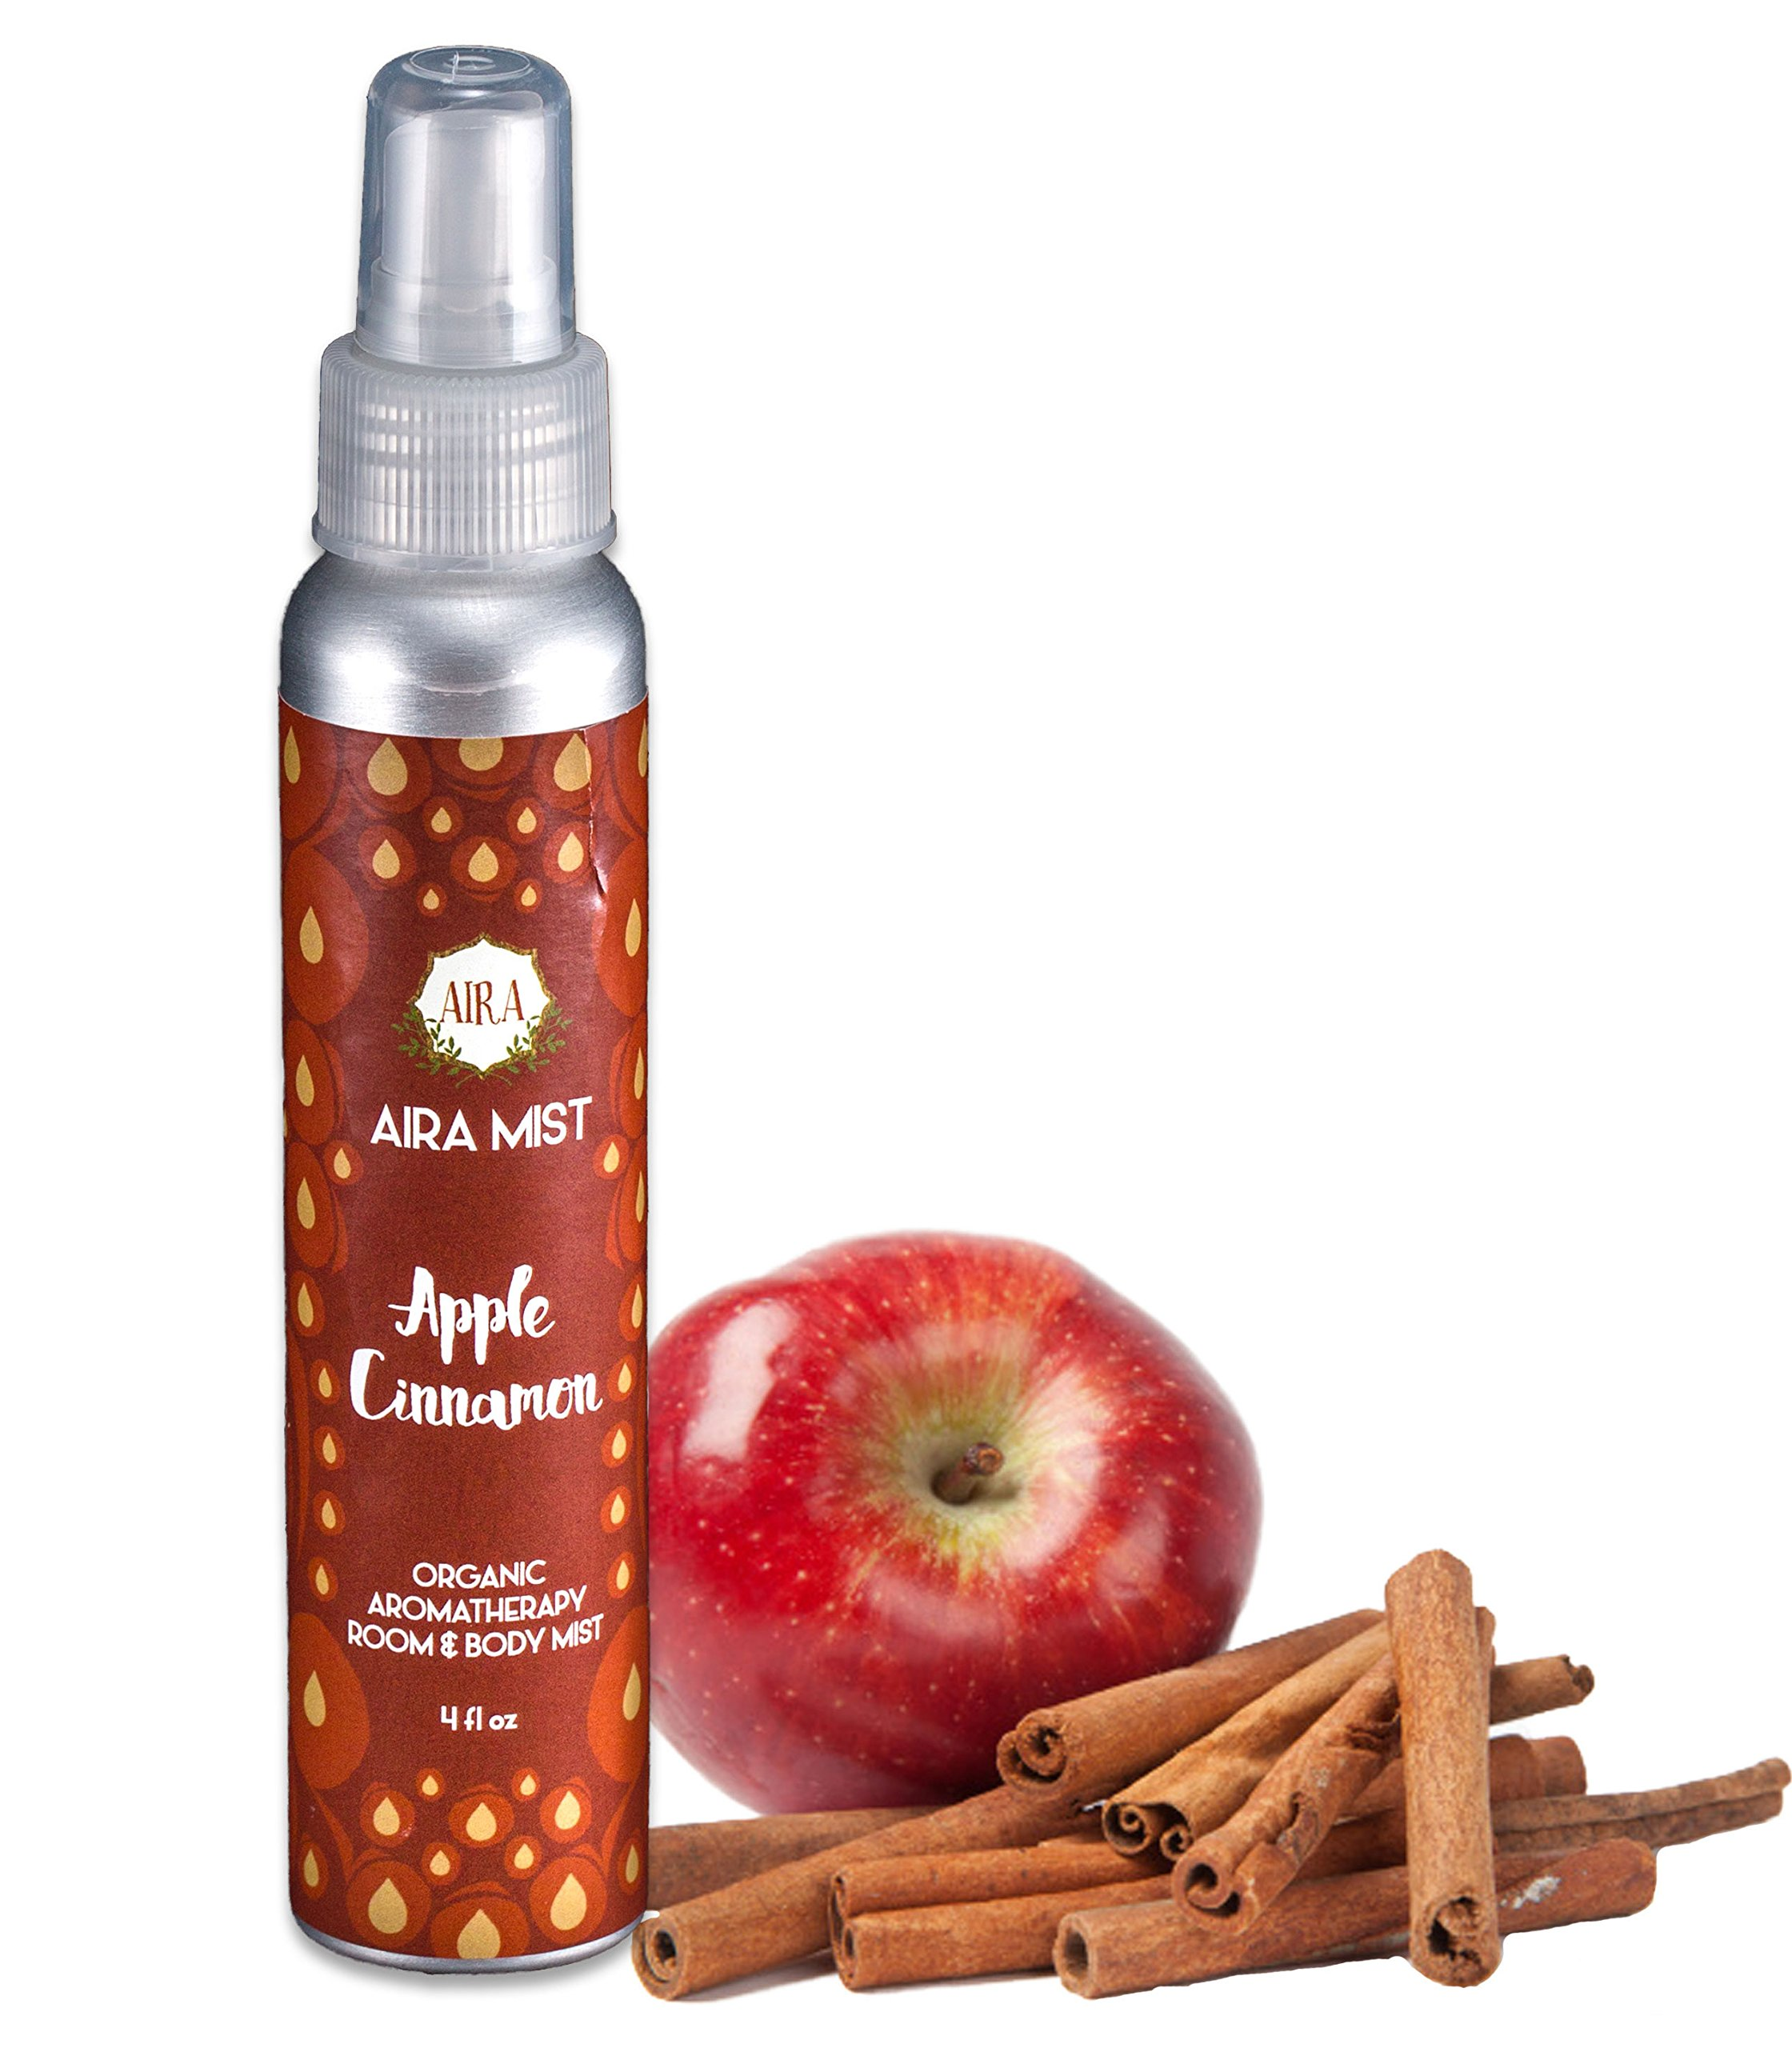 Aira Mist Apple Cinnamon Organic Room Spray - Essential Oil Spray with Organic Ingredients & Therapeutic Essential Oils - Living Room Spray Free of Alcohol & Parabens - Home Fragrance - 4 Ounces by Aira